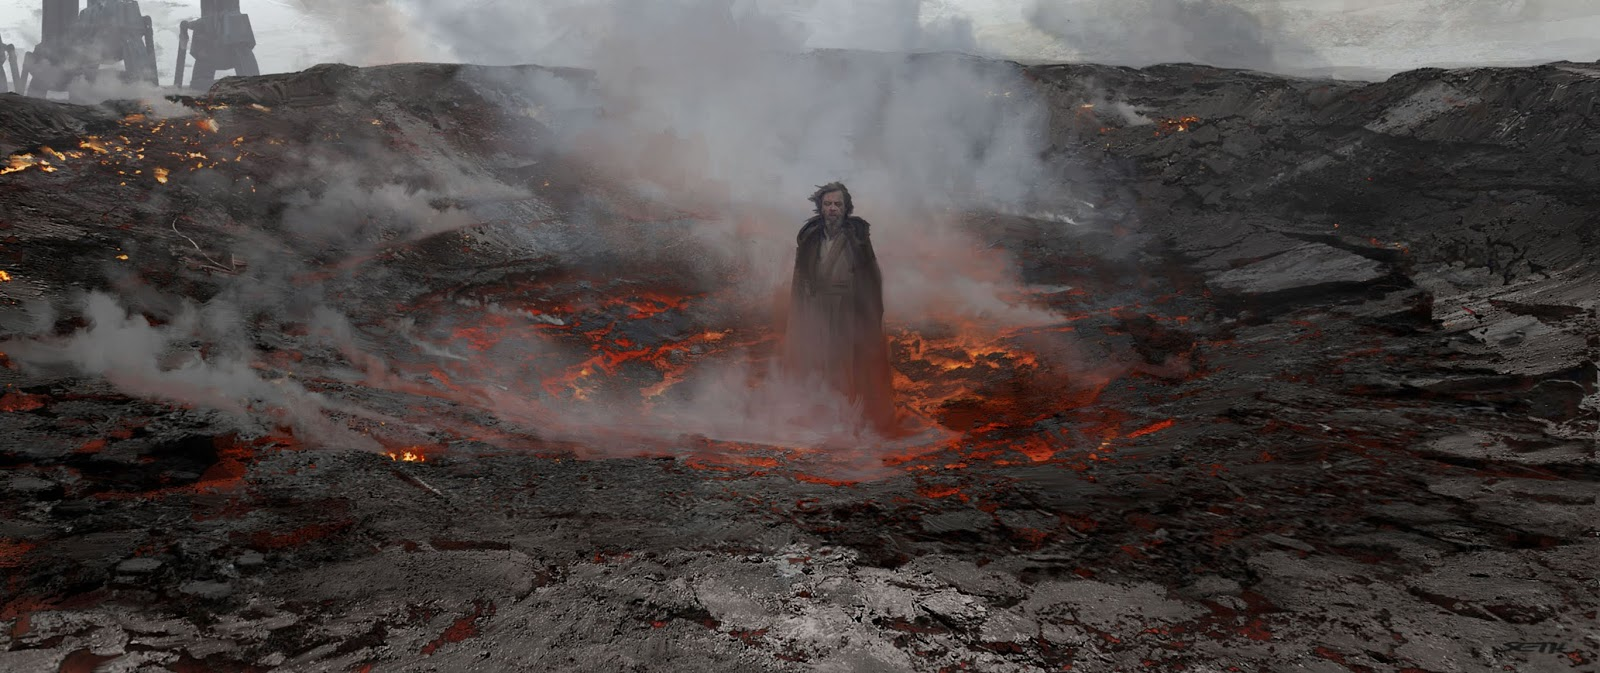 Star Wars The Last Jedi Concept Art By Seth Engstrom